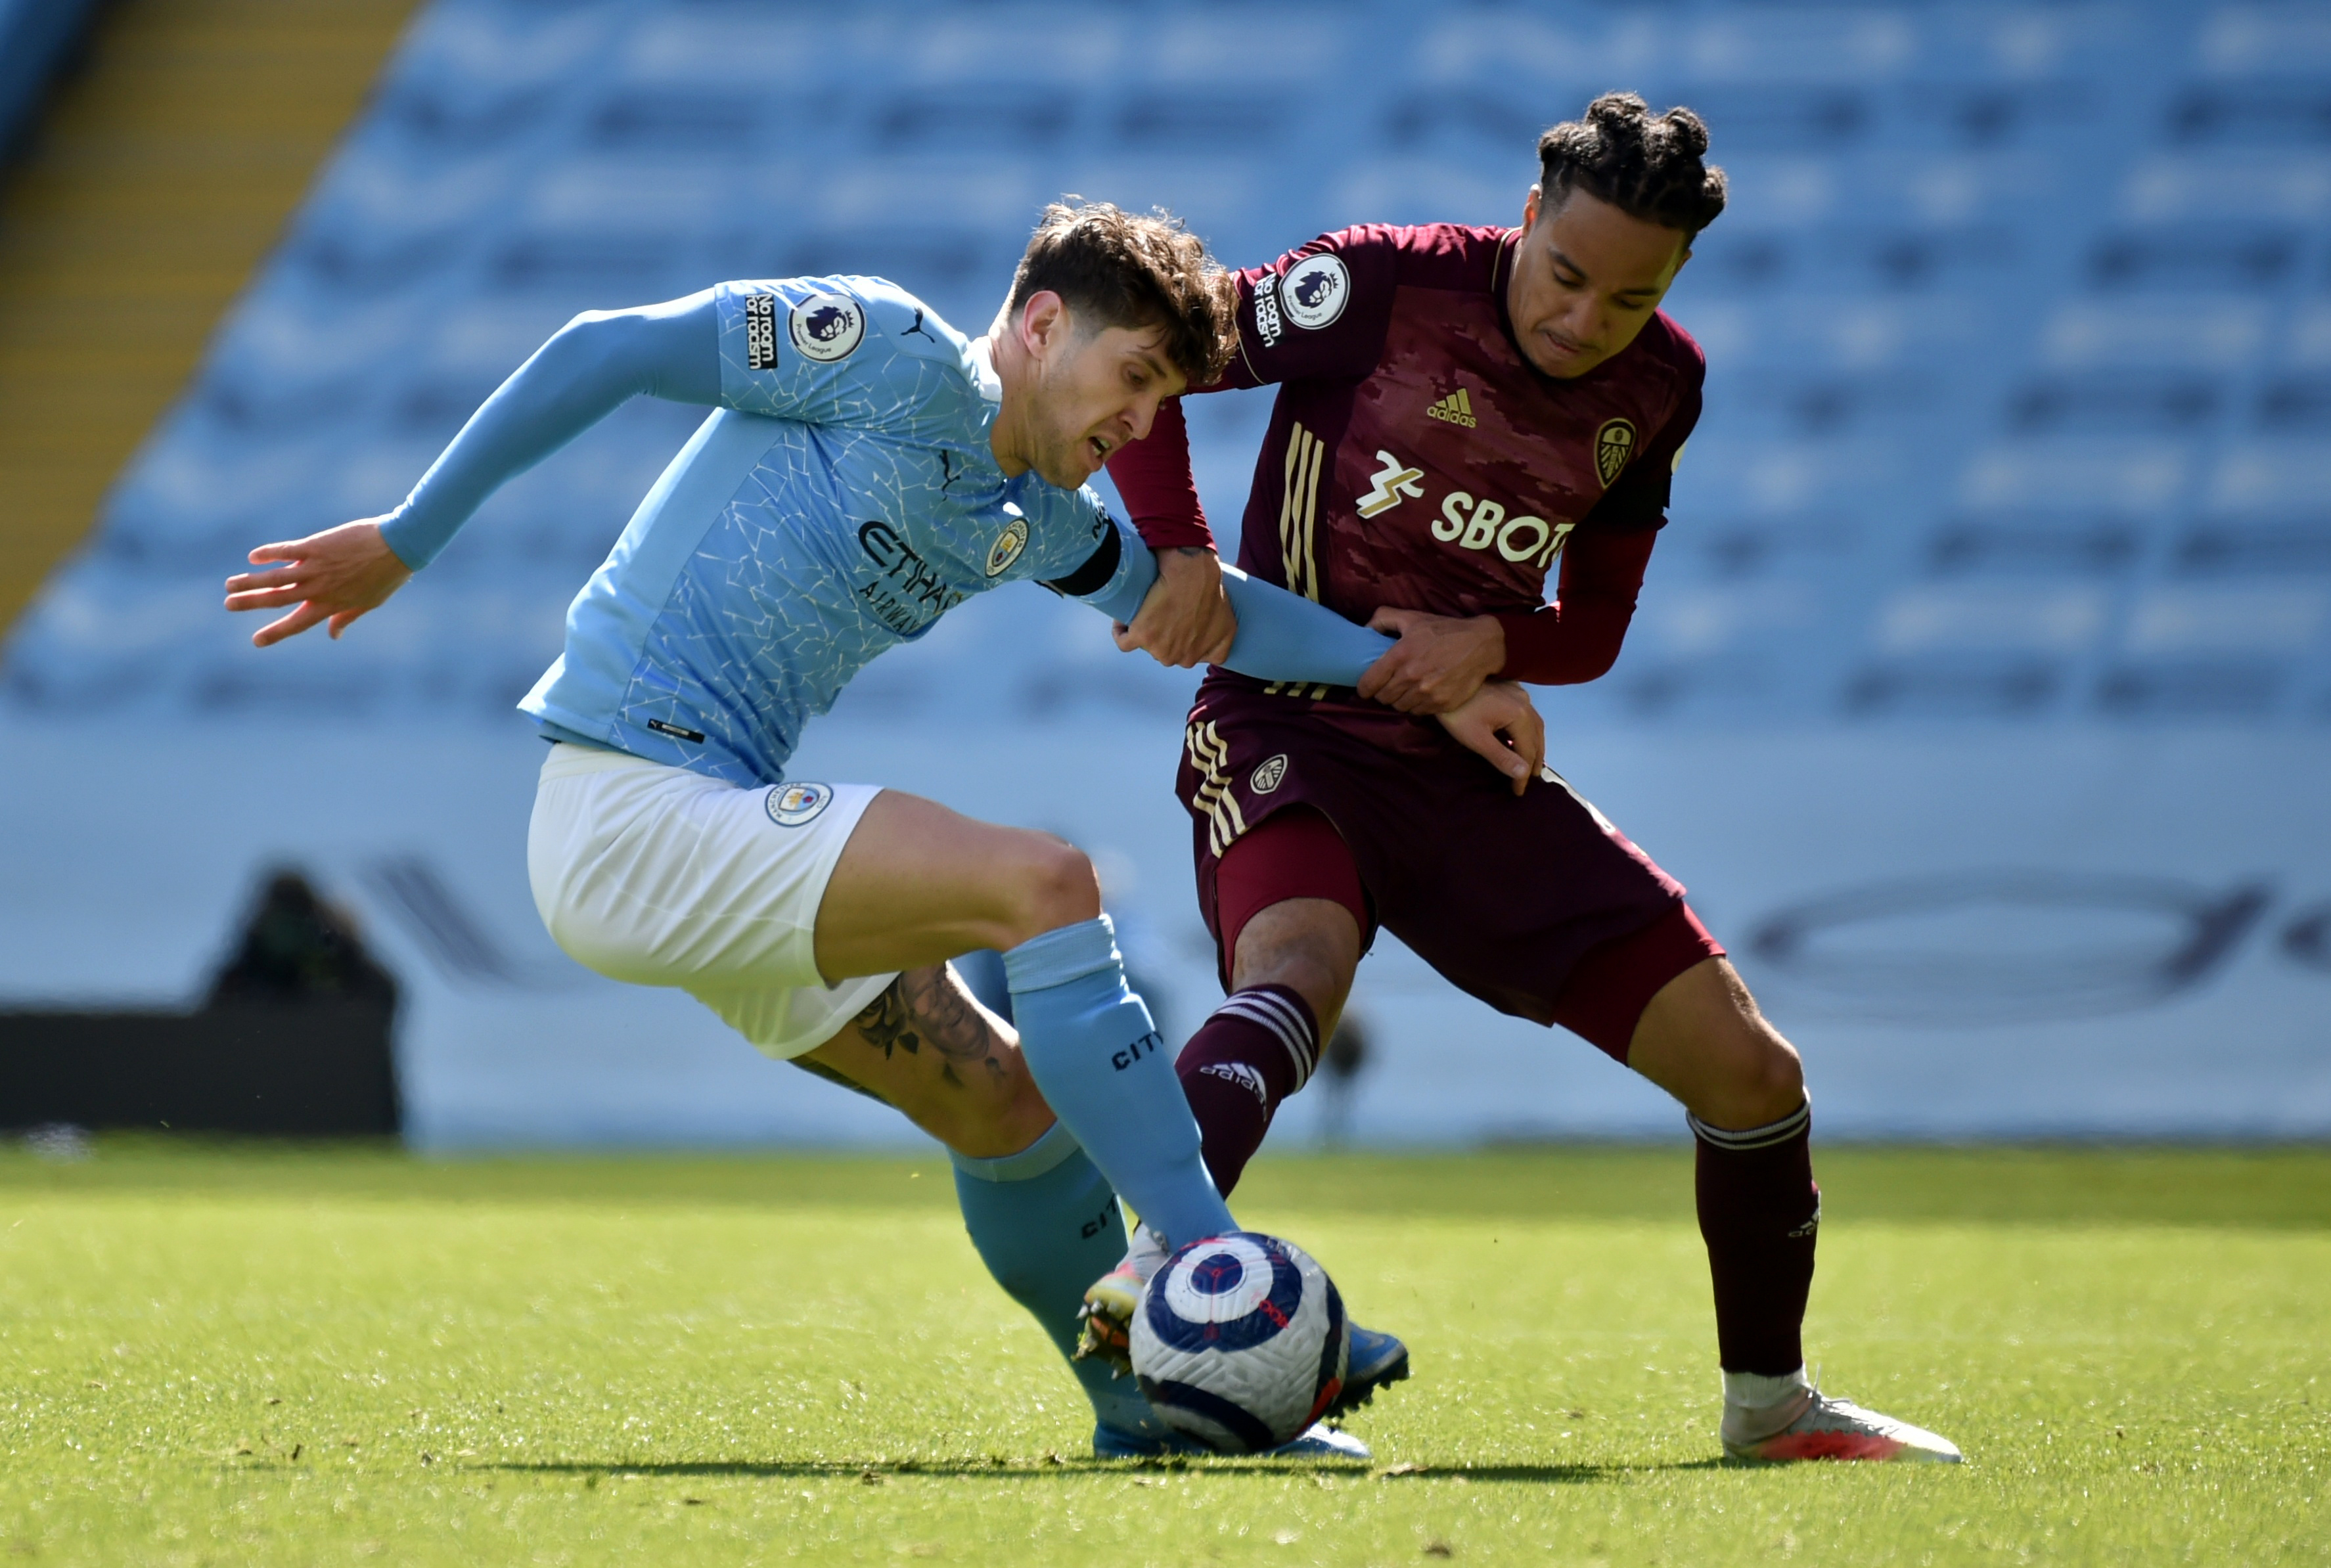 Soccer Football - Premier League - Manchester City v Leeds United - Etihad Stadium, Manchester, Britain - April 10, 2021 Manchester City's John Stones in action with Leeds United's Helder Costa Pool via REUTERS/Rui Vieira